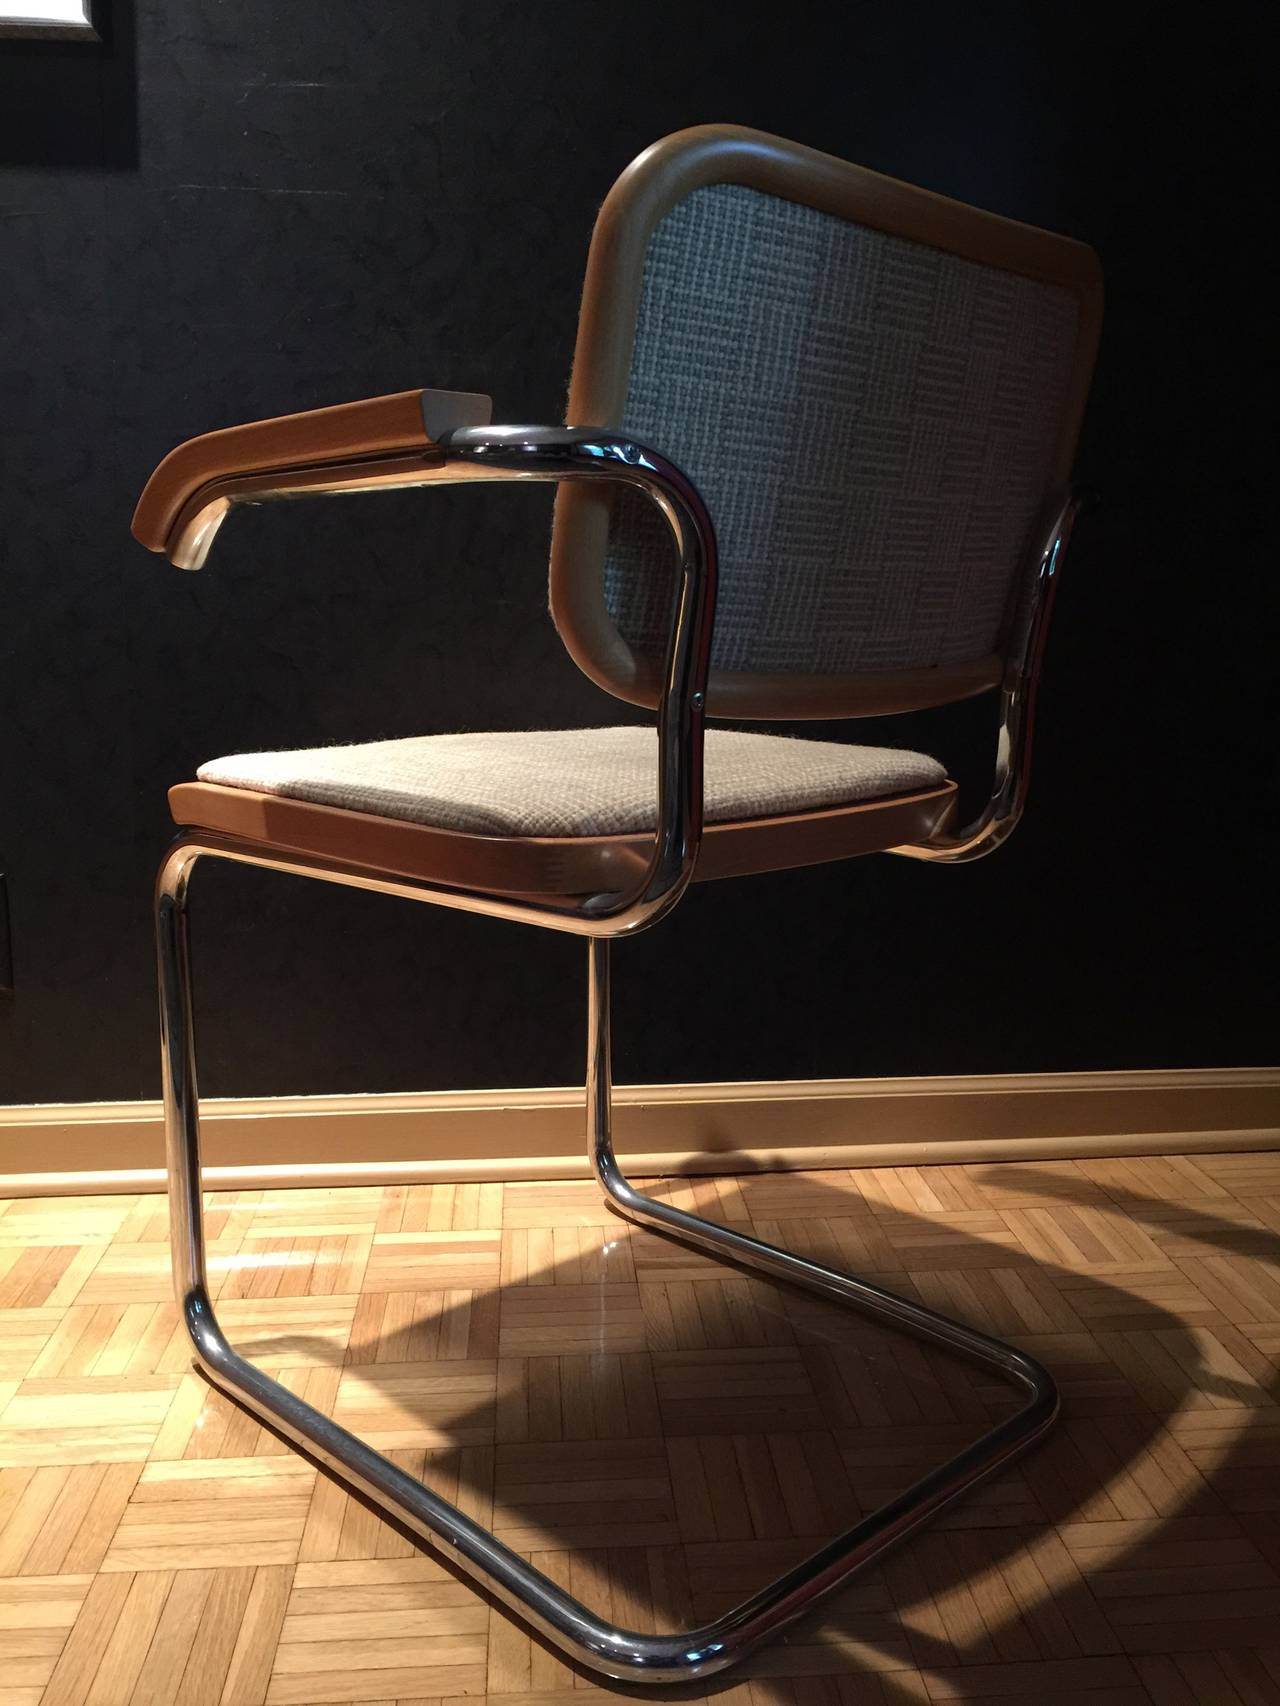 cesca chair replacement seats uk covers for recliners incredible set of ten chairs by marcel breuer